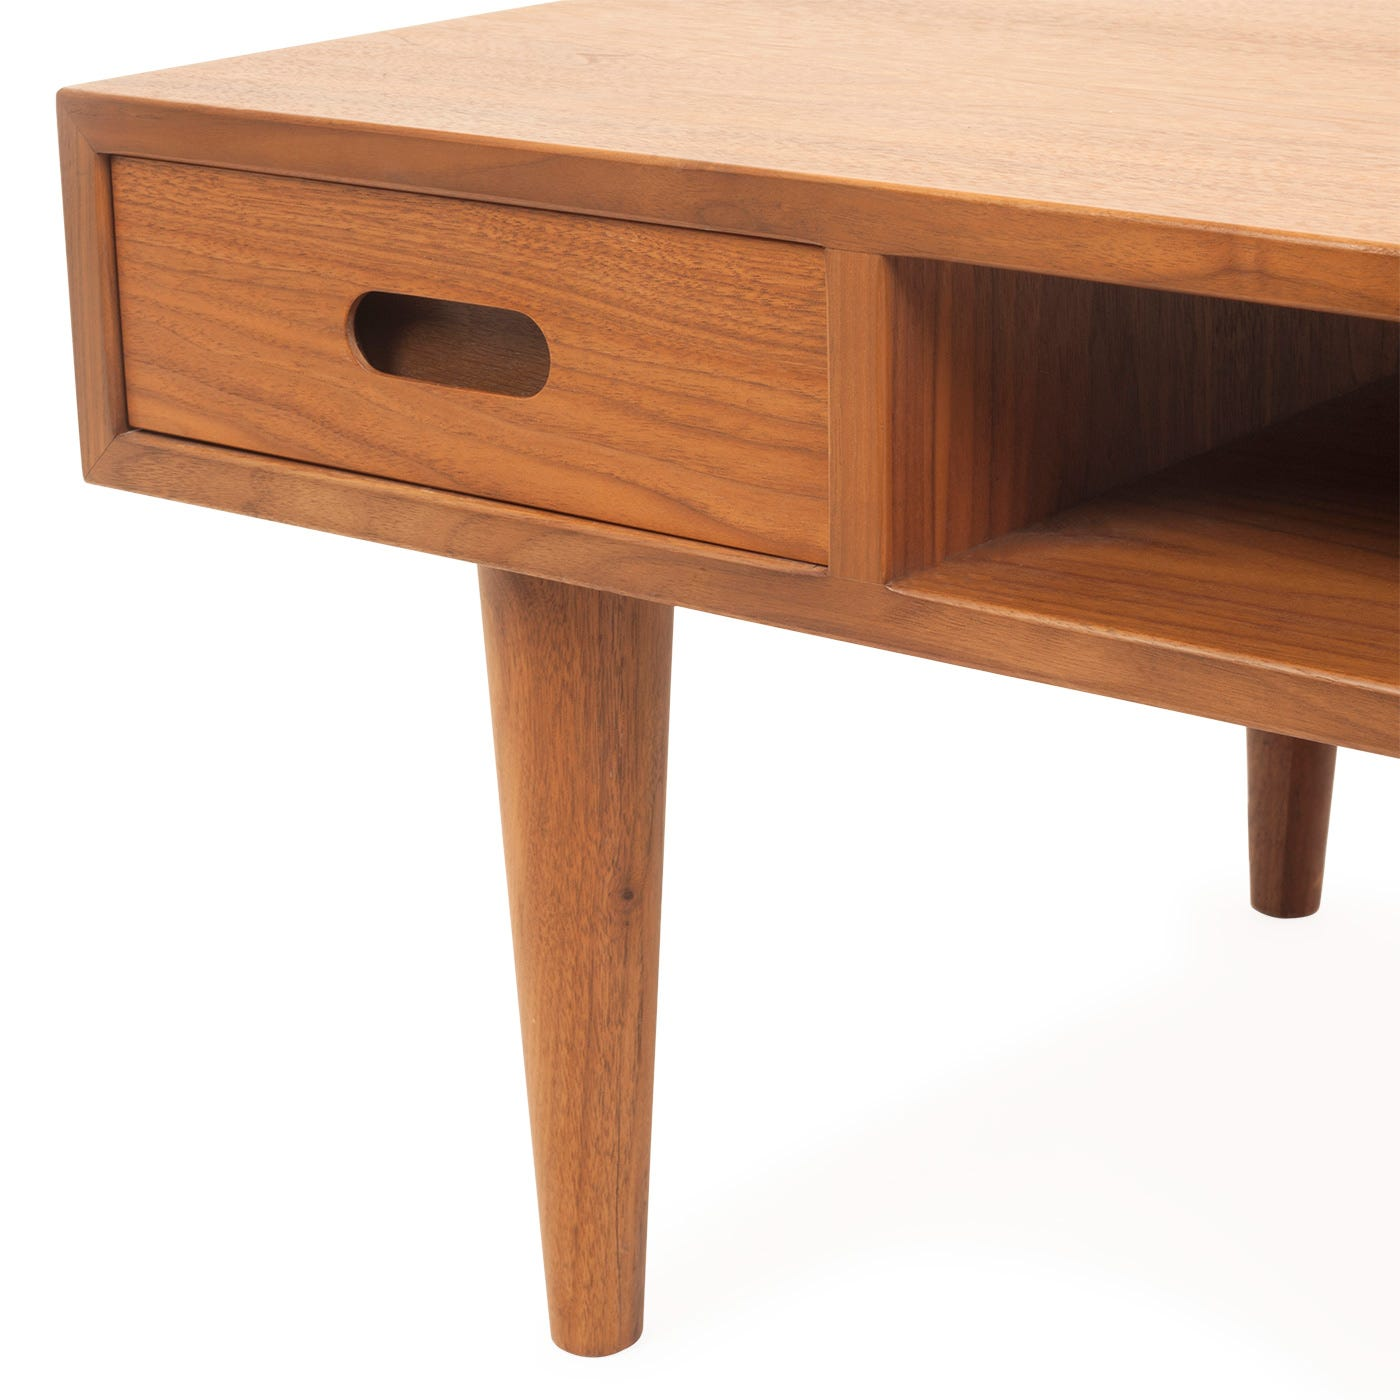 Small Coffee Tables Heals: Heal's Holborn Coffee Table